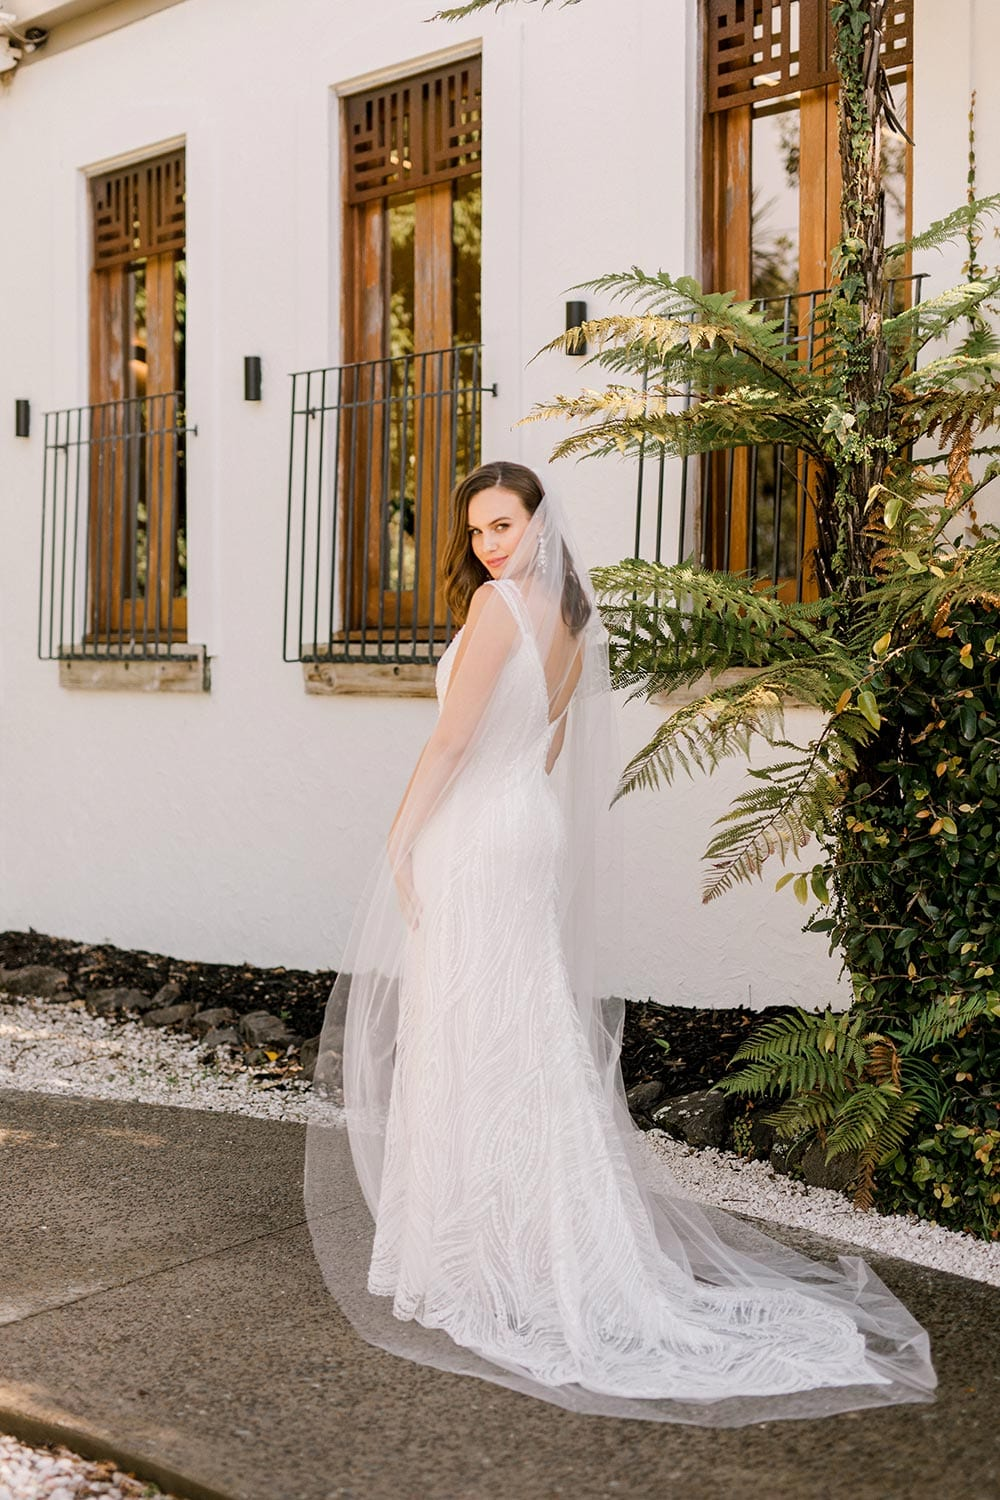 Kiera Wedding Dress from Vinka Design. Beautifully beaded lace wedding dress. Deep V-neckline both front and back is complemented with delicate sheer lace shoulder detail & structured bodice. Portrait showing full dress from the side. Photographed at Tui Hills.